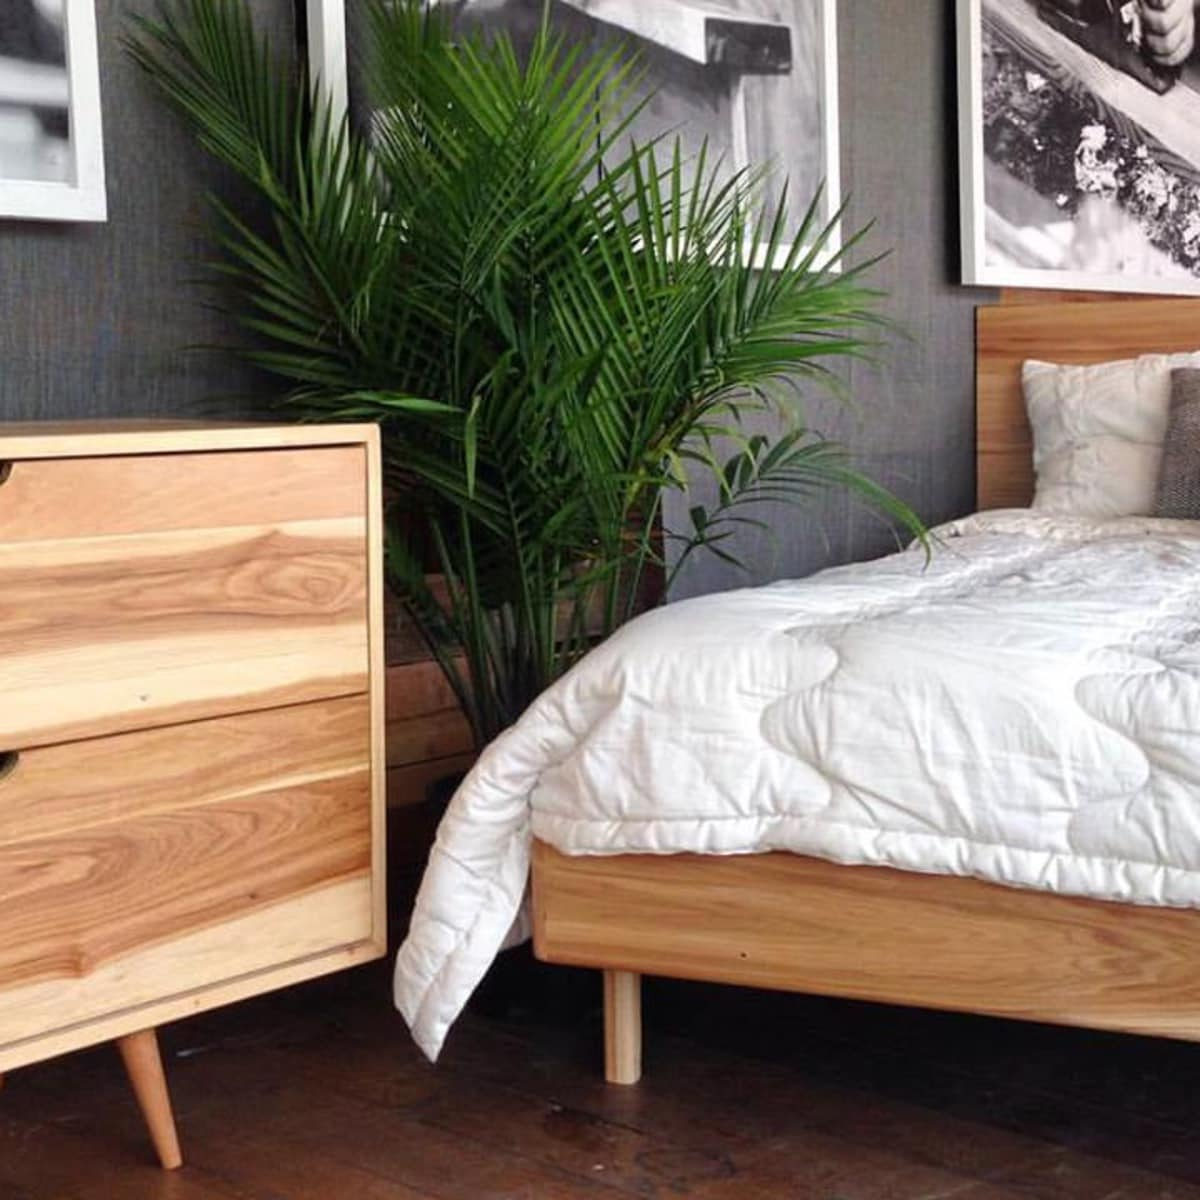 New Living furniture Made @ New Living eco friendly